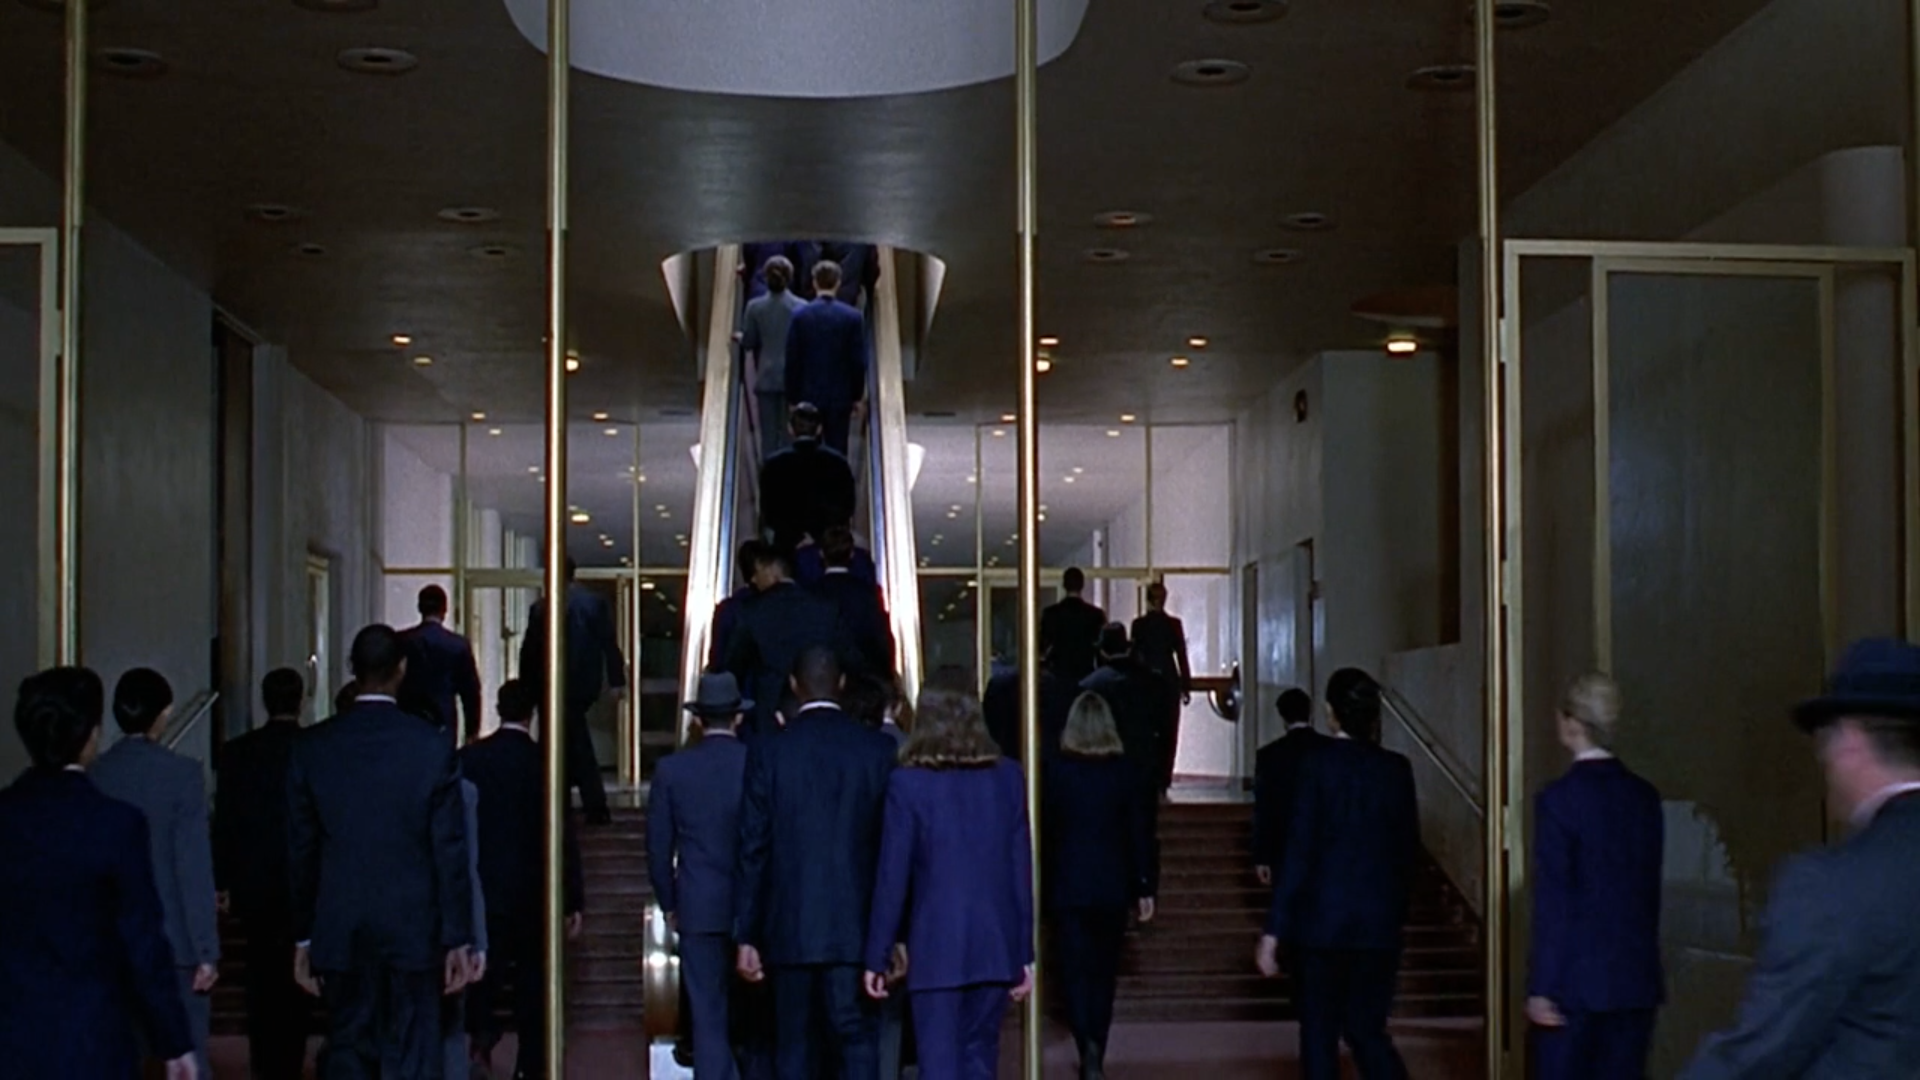 an analysis of discrimination in gattaca by andrew niccol Symbolism in andrew niccols gattaca  english, abstract: gattaca is a film by director andrew niccol  discrimination niccol uses imagery and symbolism .